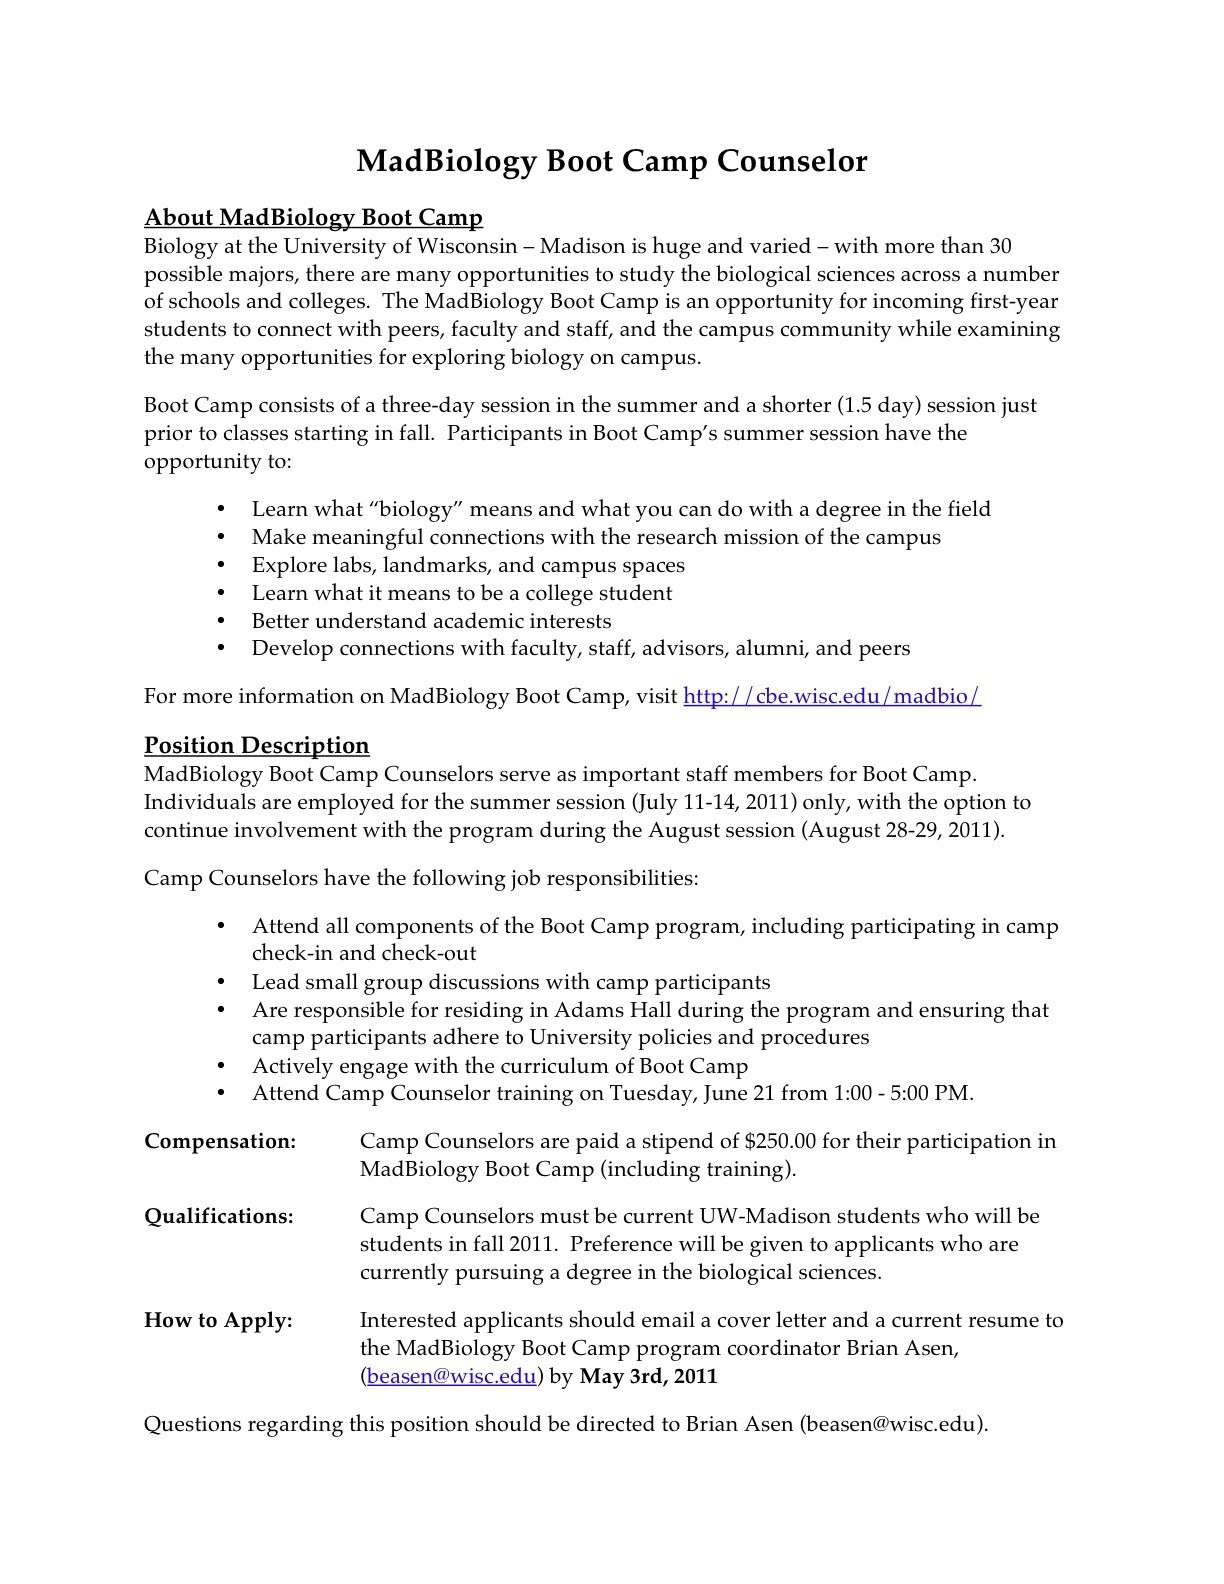 Counselor Resume Template - Camp Counselor Resume Inspirational Resume Examples for Youth